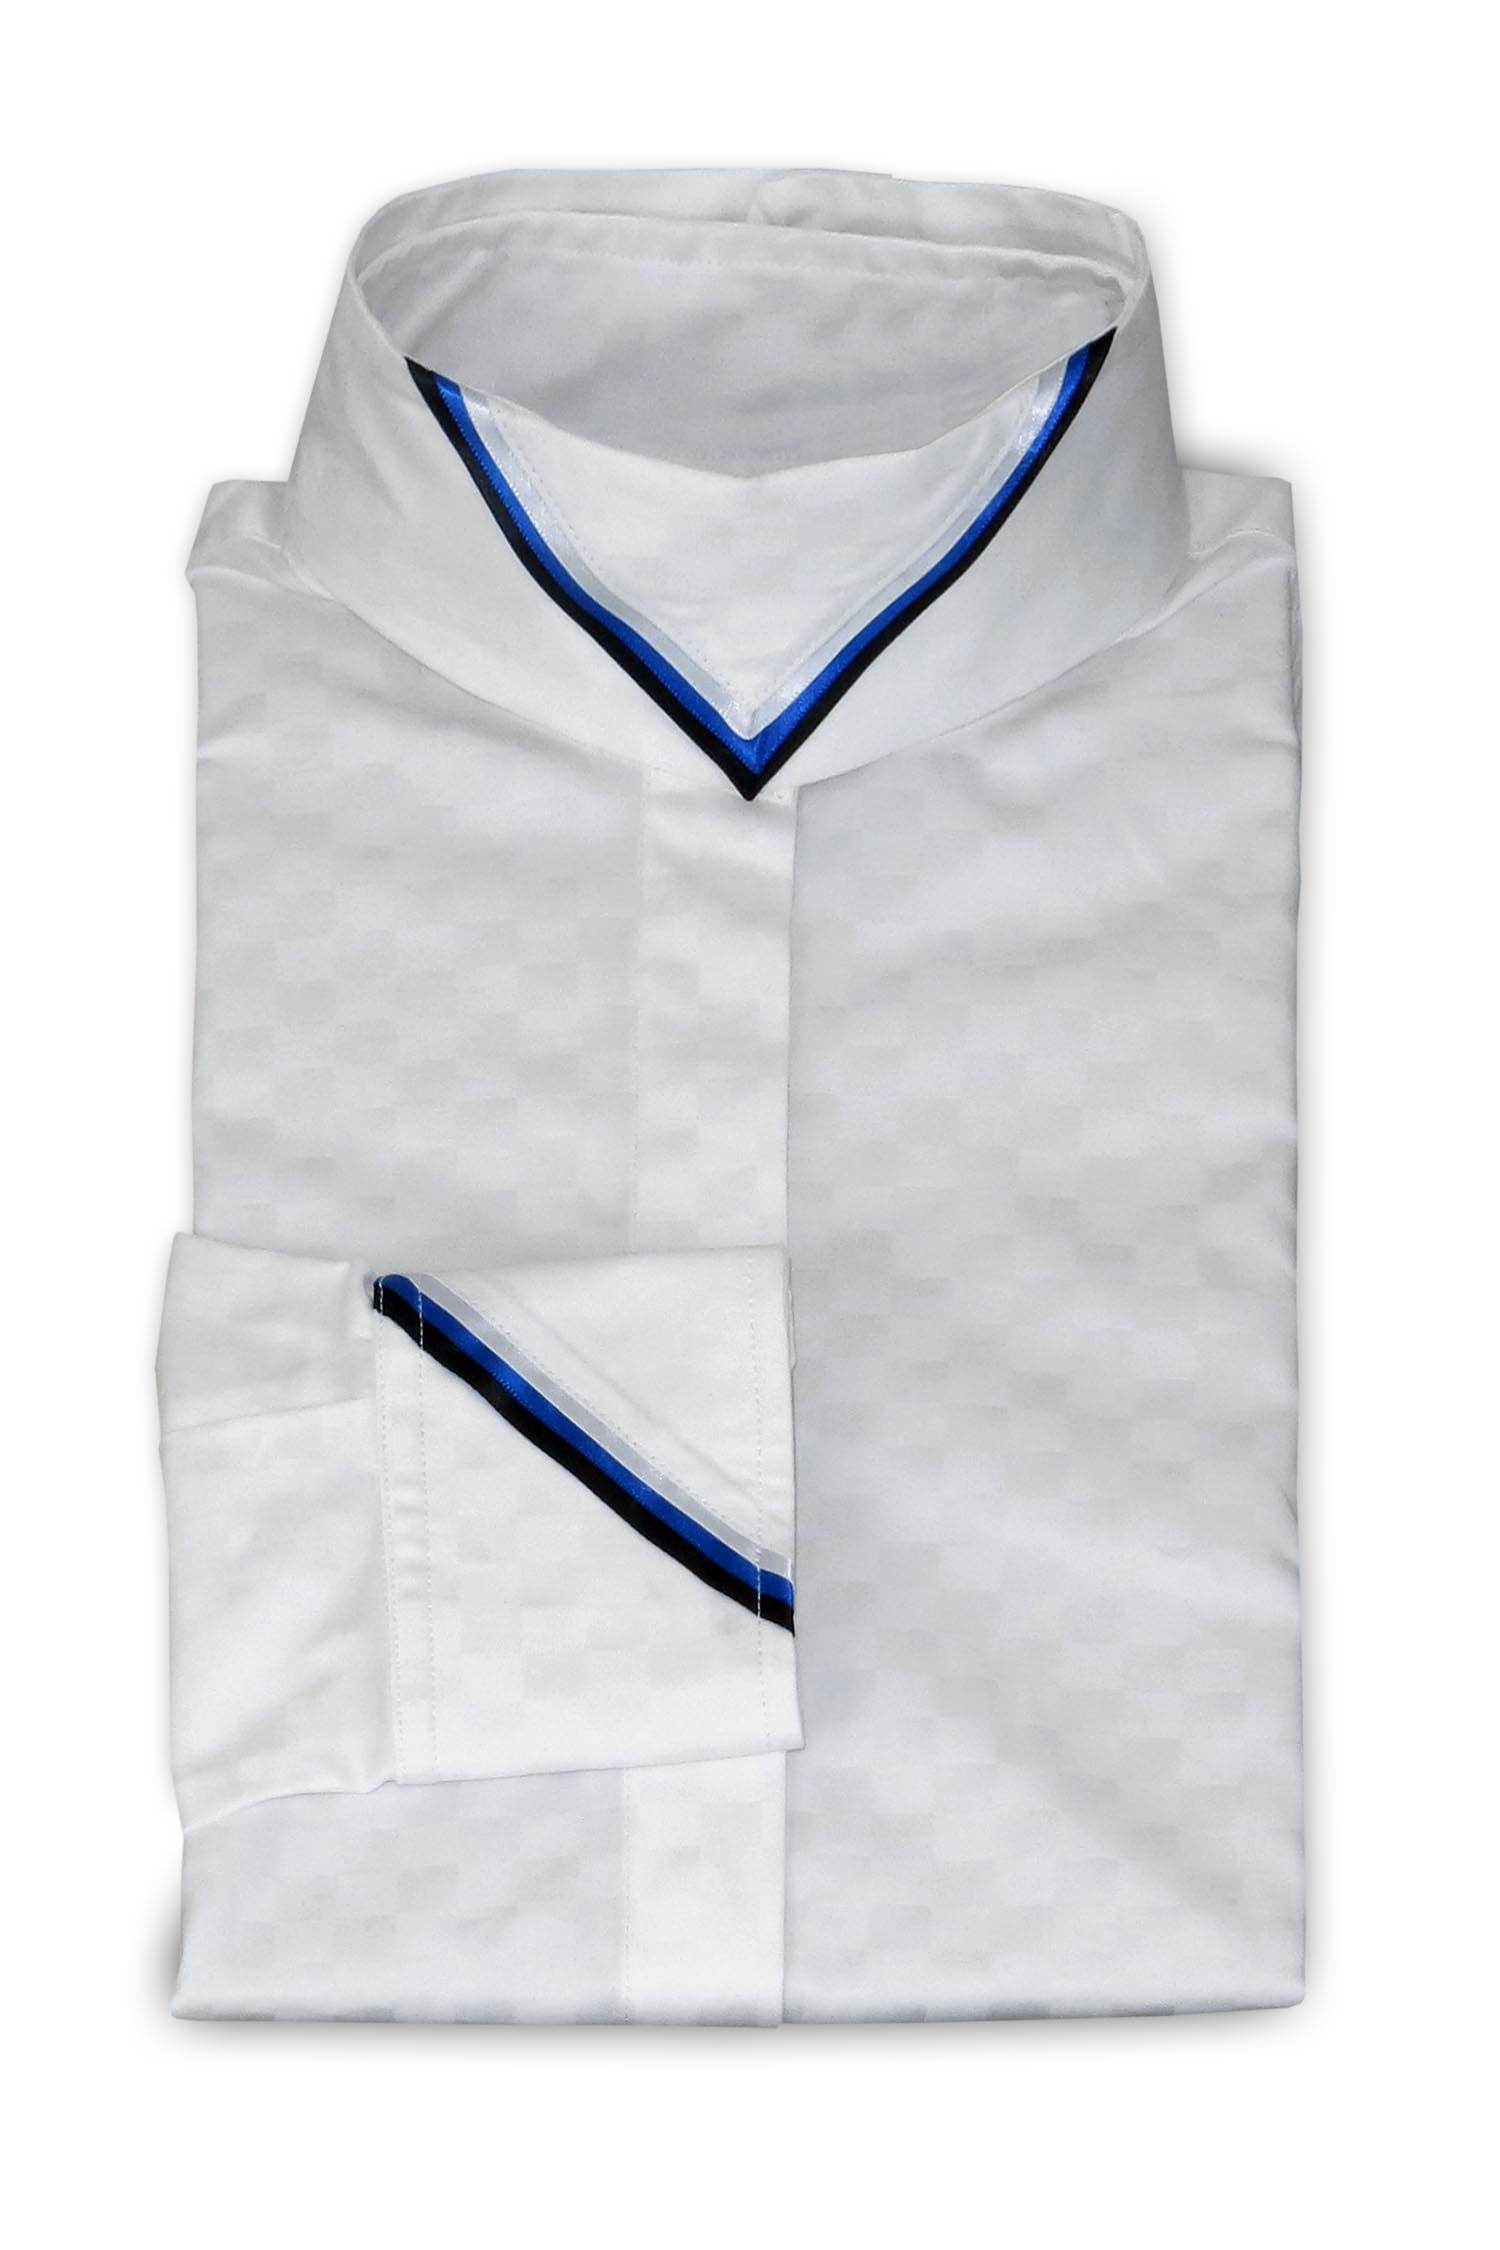 White Medium Check - Cobalt & White